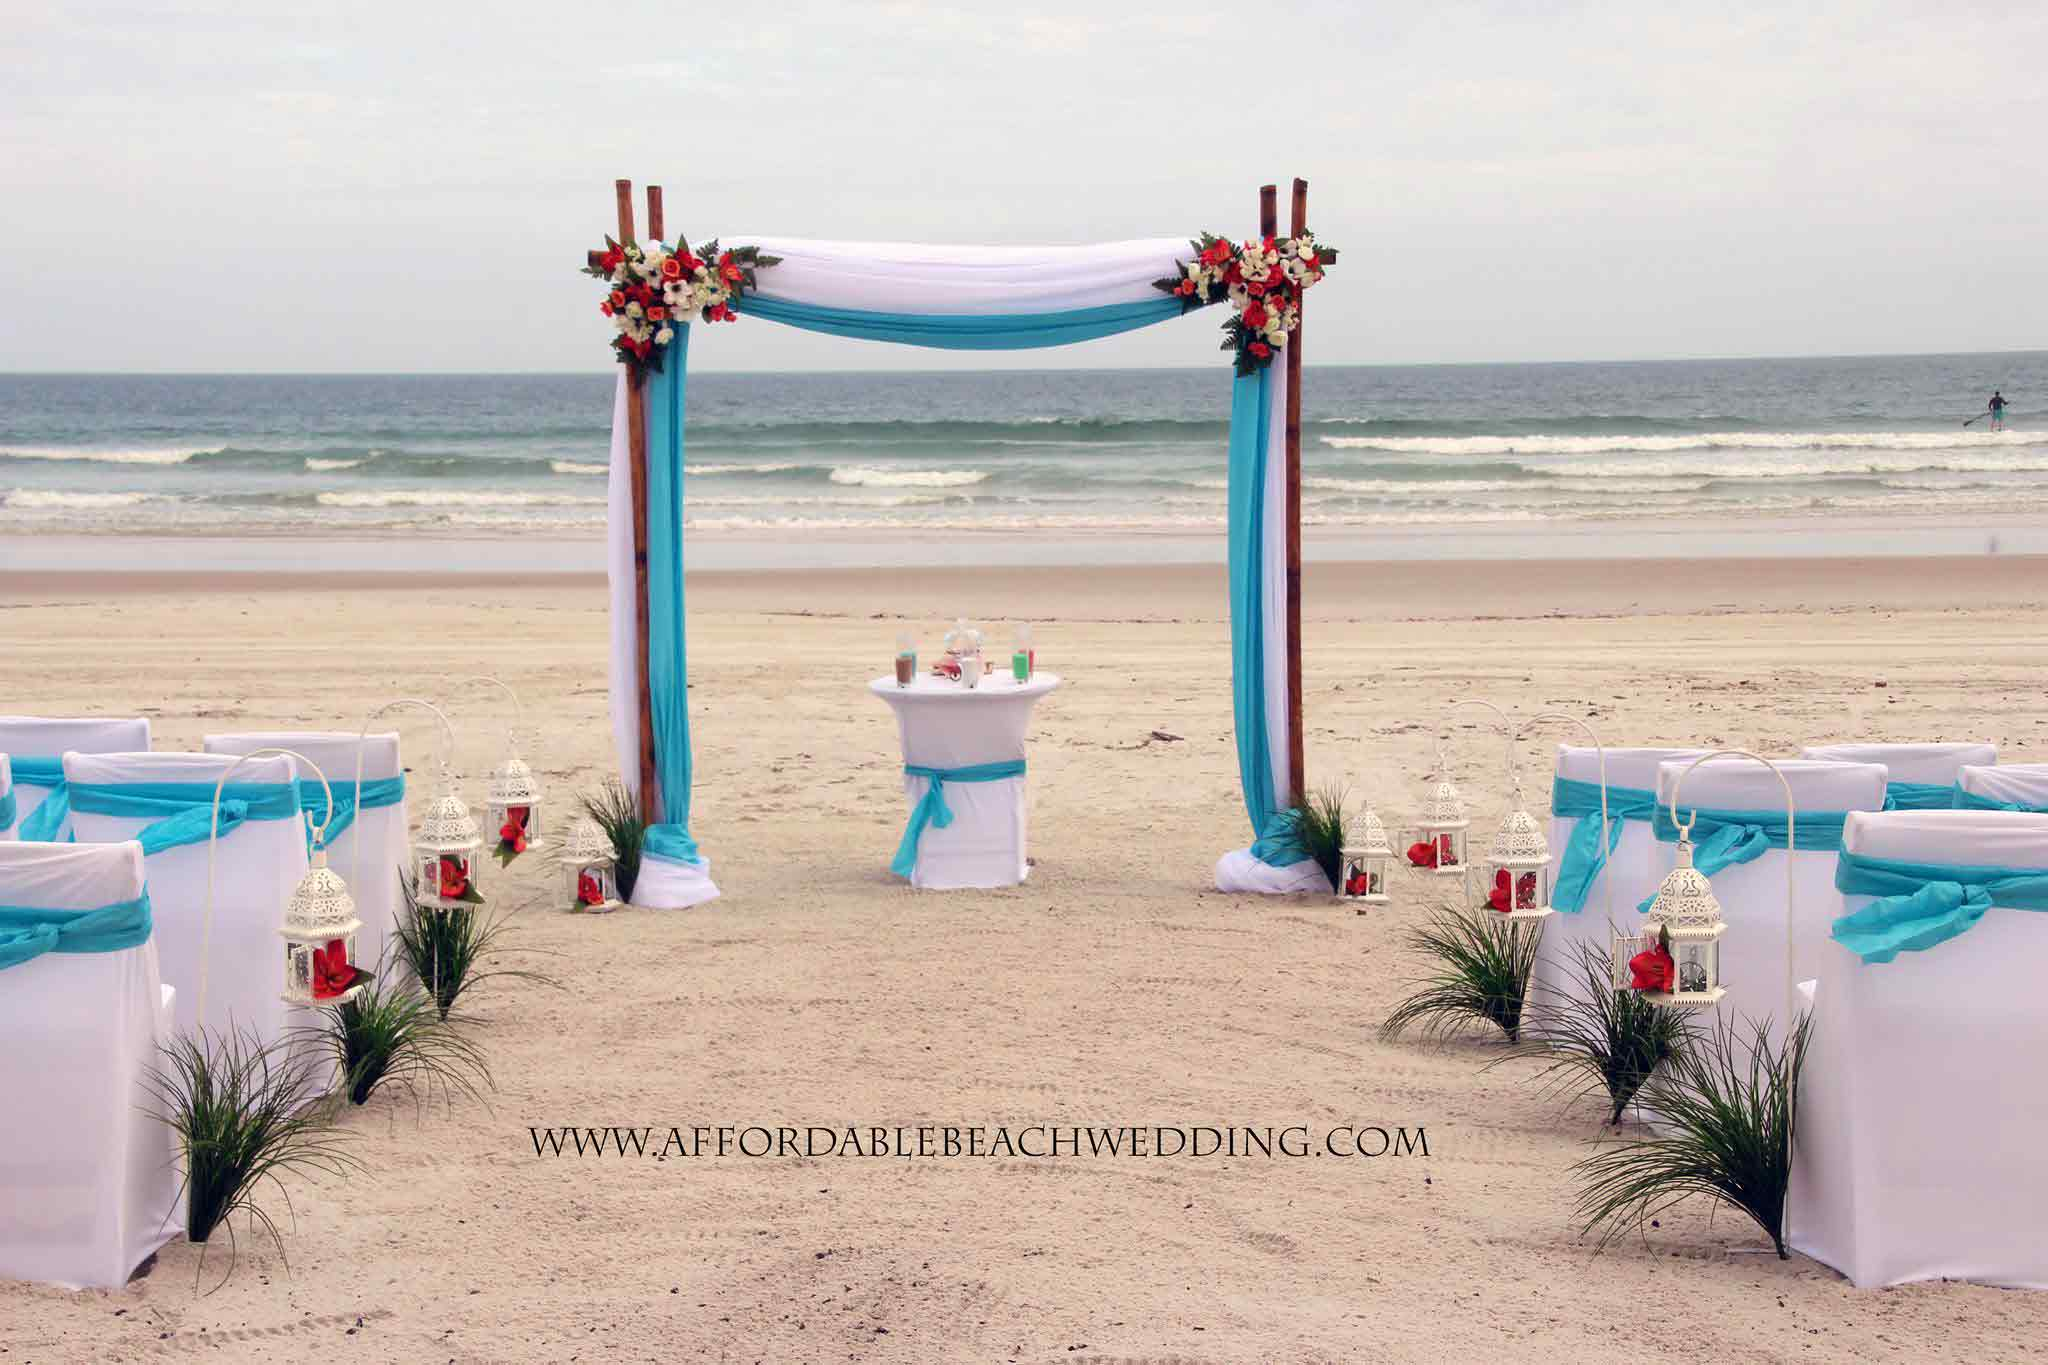 Affordable Beach Wedding Daytona Beach Amp New Smyrna Beach Weddings